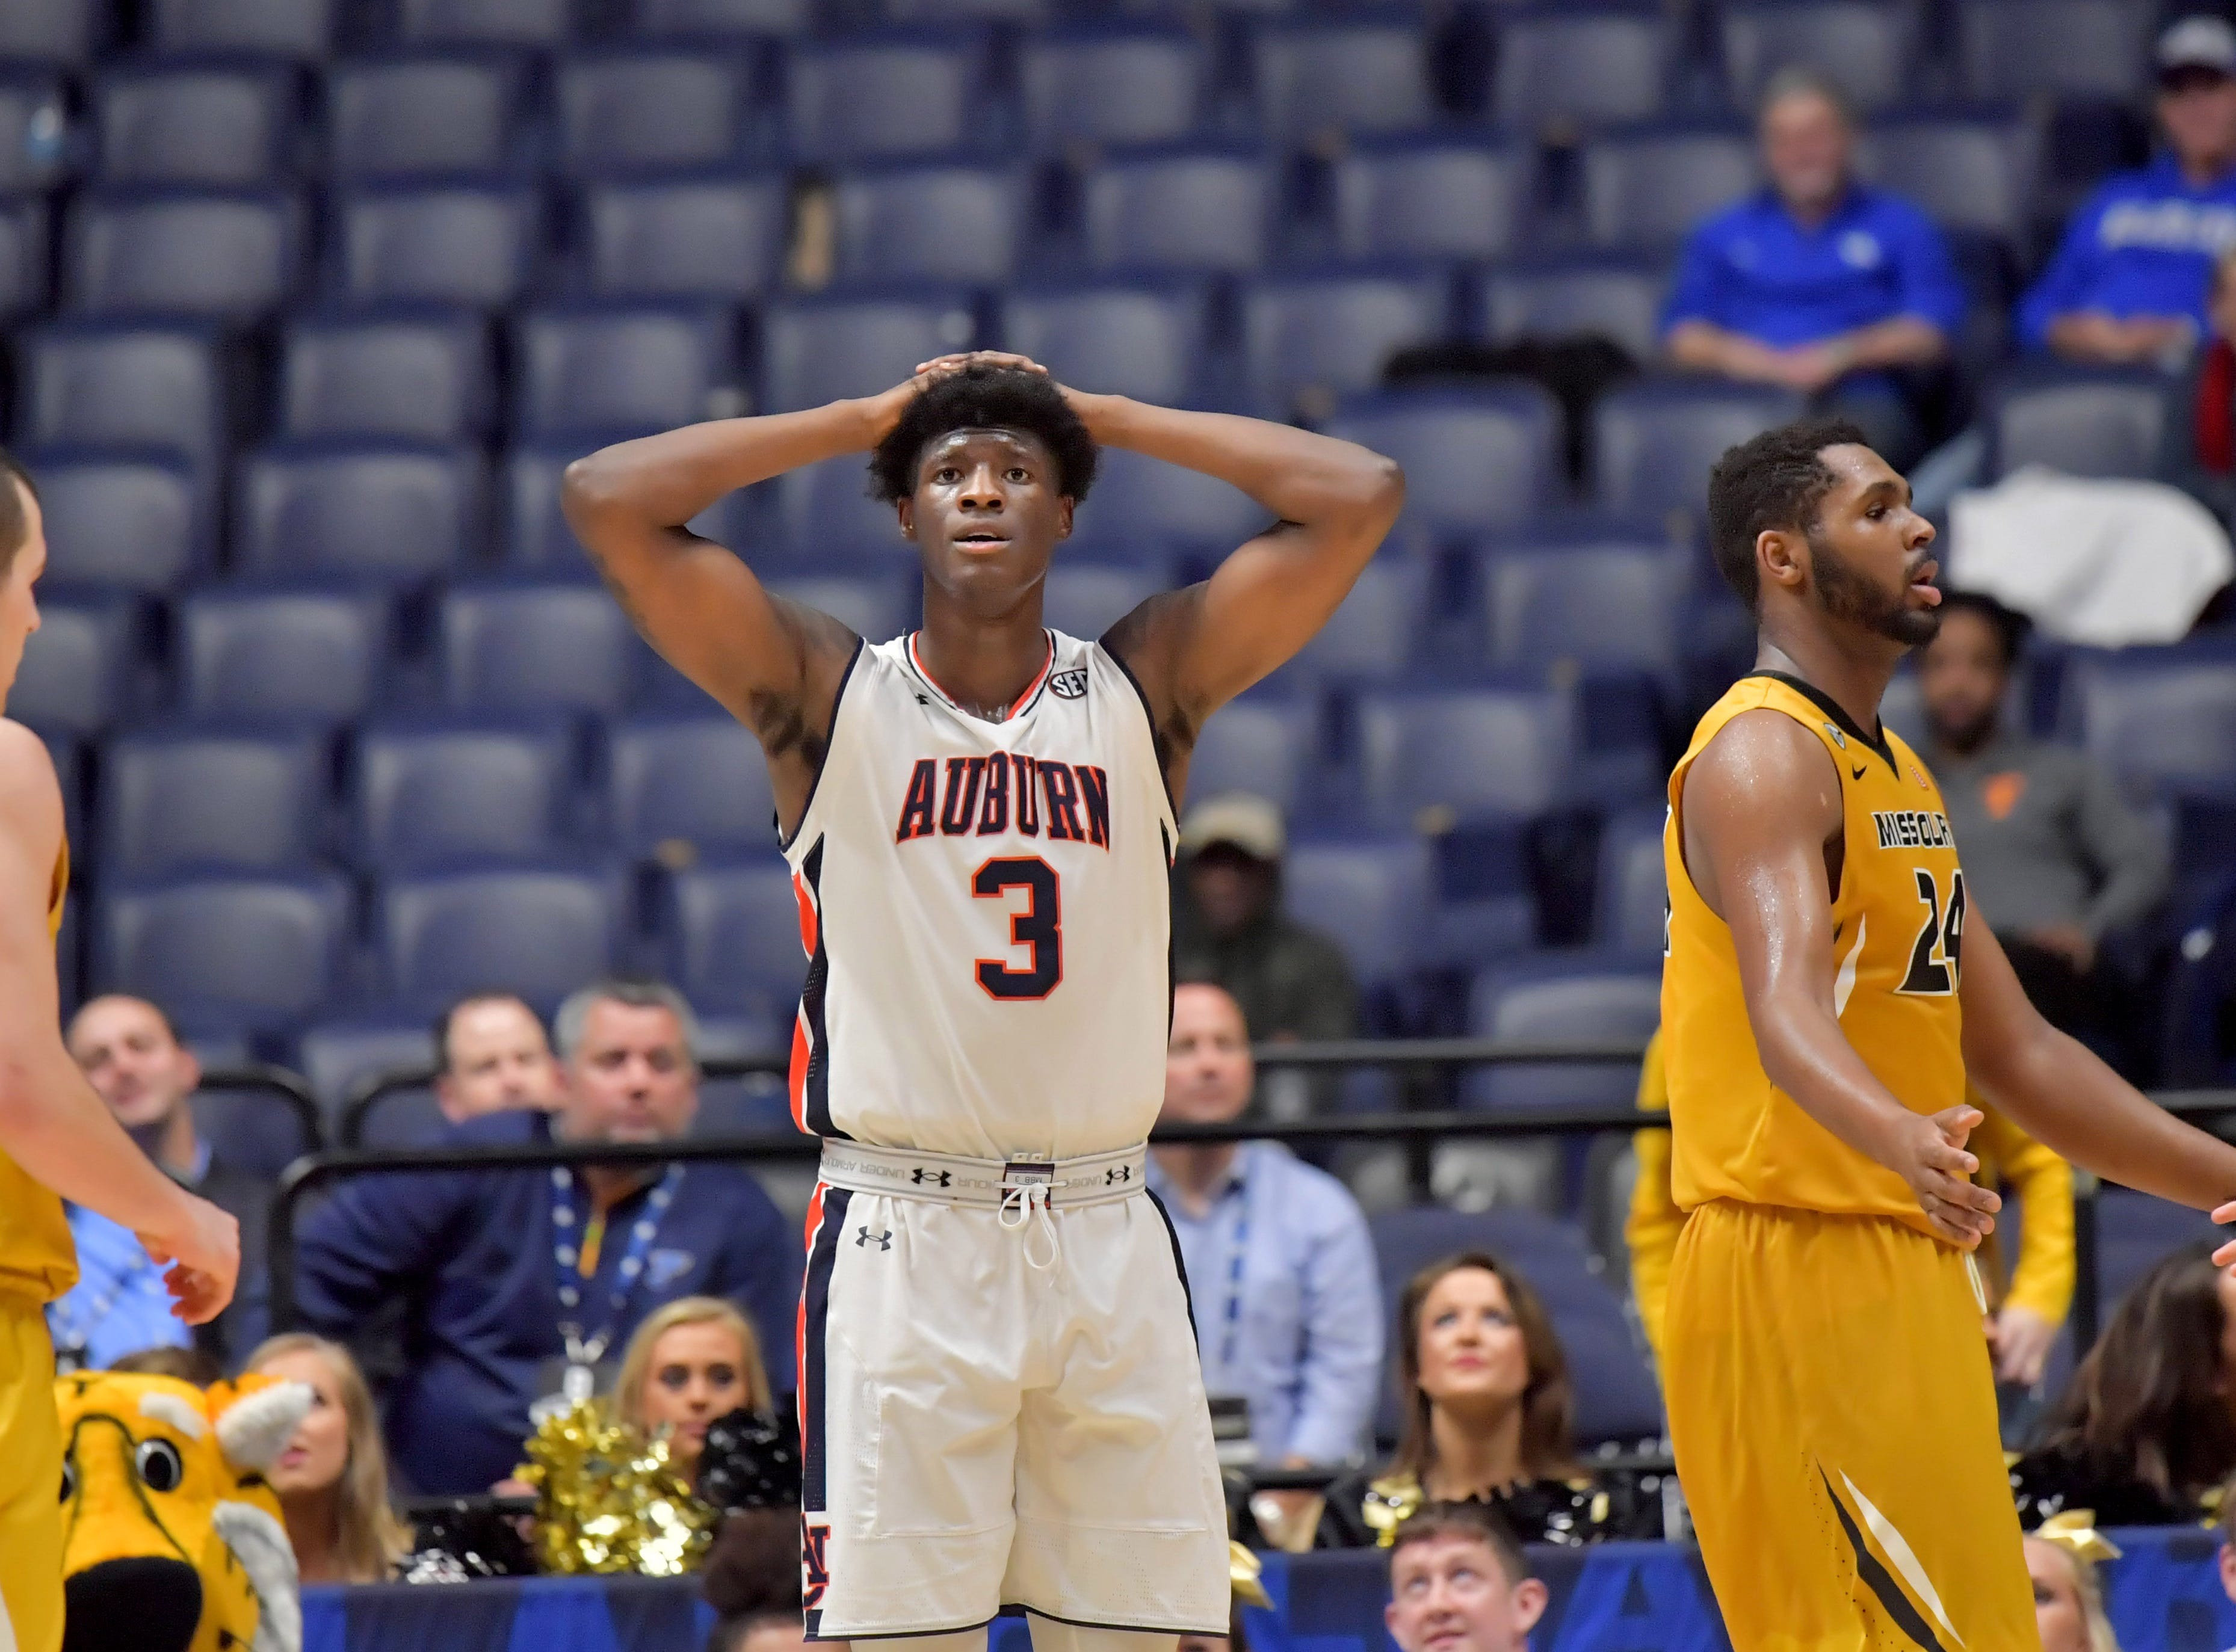 Mar 8, 2017; Nashville, TN, USA; Auburn Tigers forward Danjel Purifoy (3) reacts in the second half of game two of the SEC Conference Tournament against the Missouri Tigers at Bridgestone Arena. Mandatory Credit: Jim Brown-USA TODAY Sports